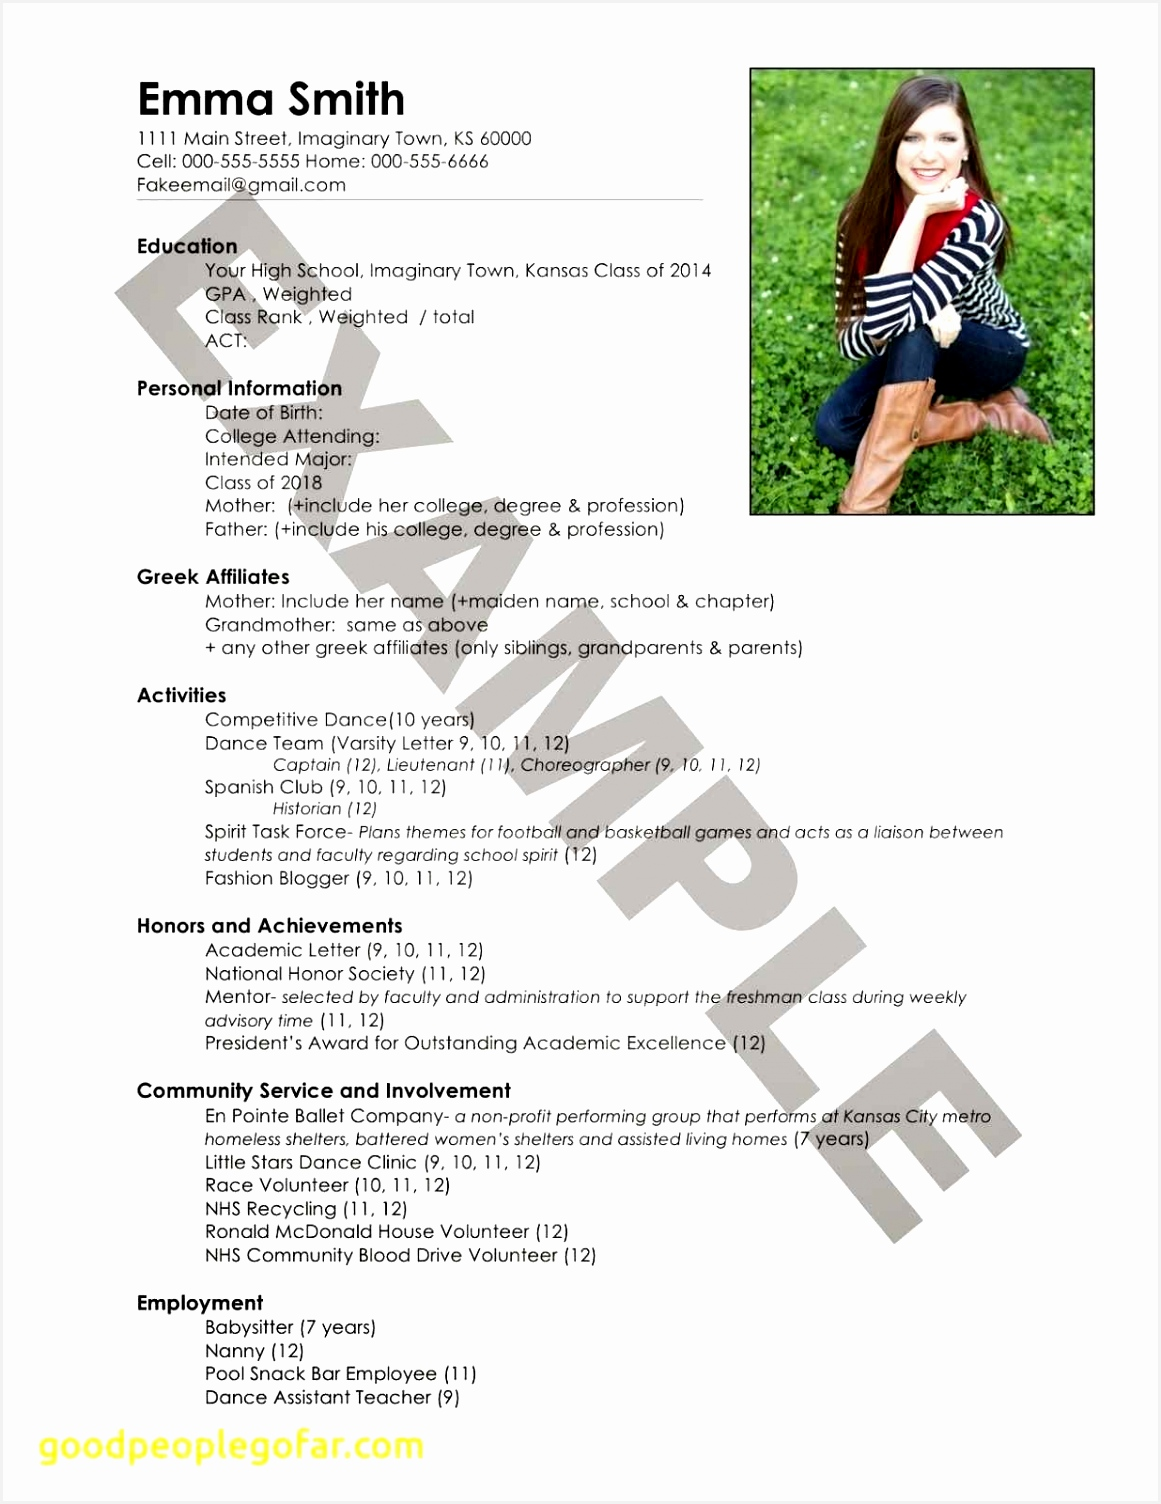 Game Animator Sample Resume Kglde Inspirational Fashion Design Resume Luxury Helpdesk Resume Template New sorority15041161